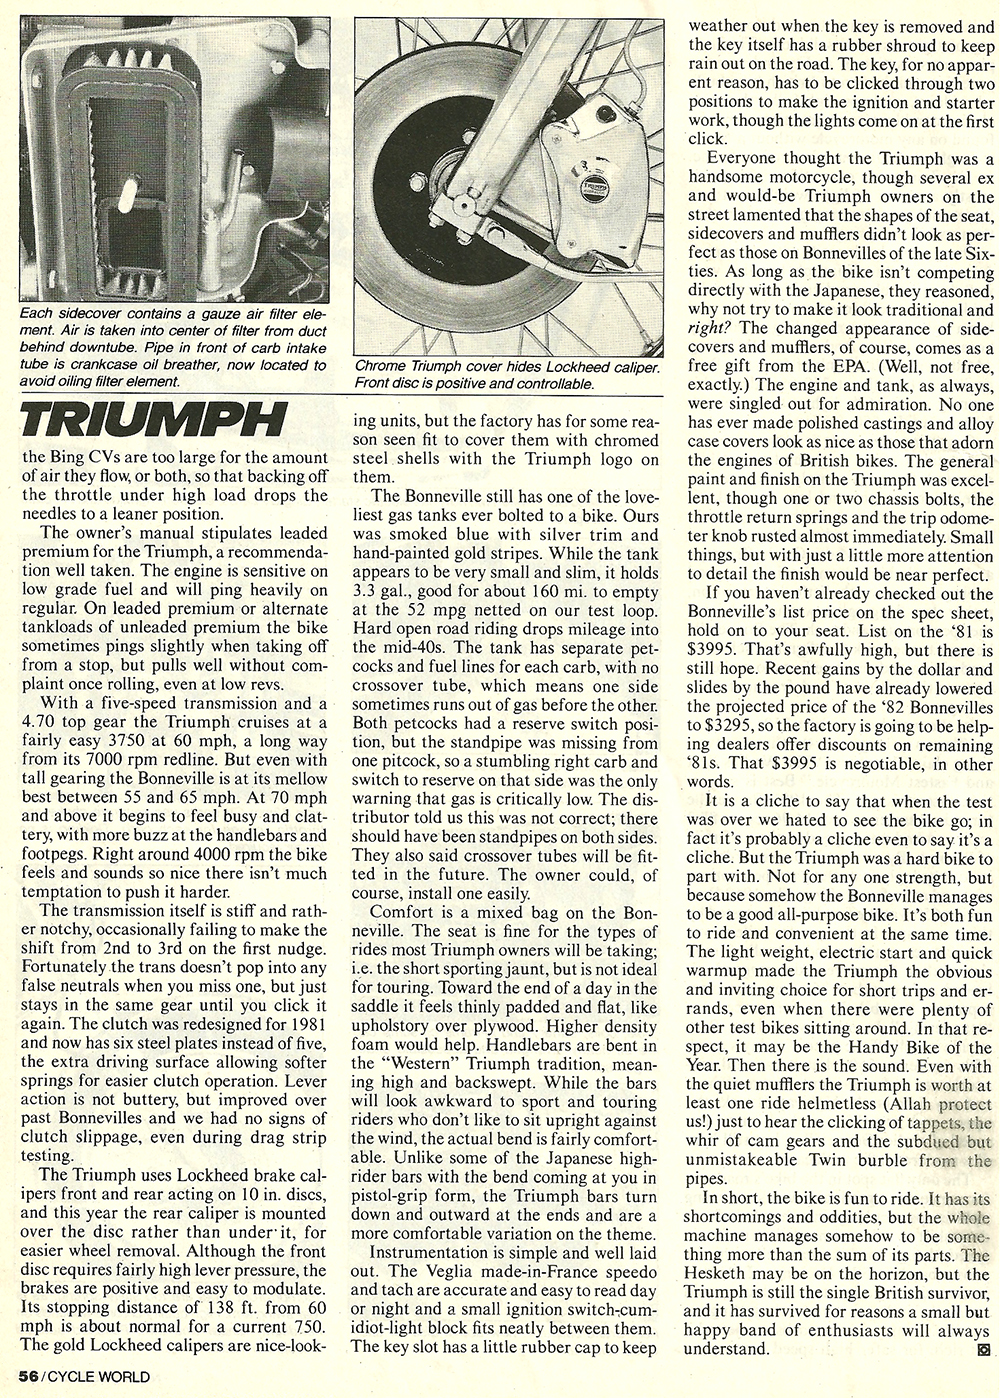 1981 Triumph 750 Bonneville road test 5.jpg